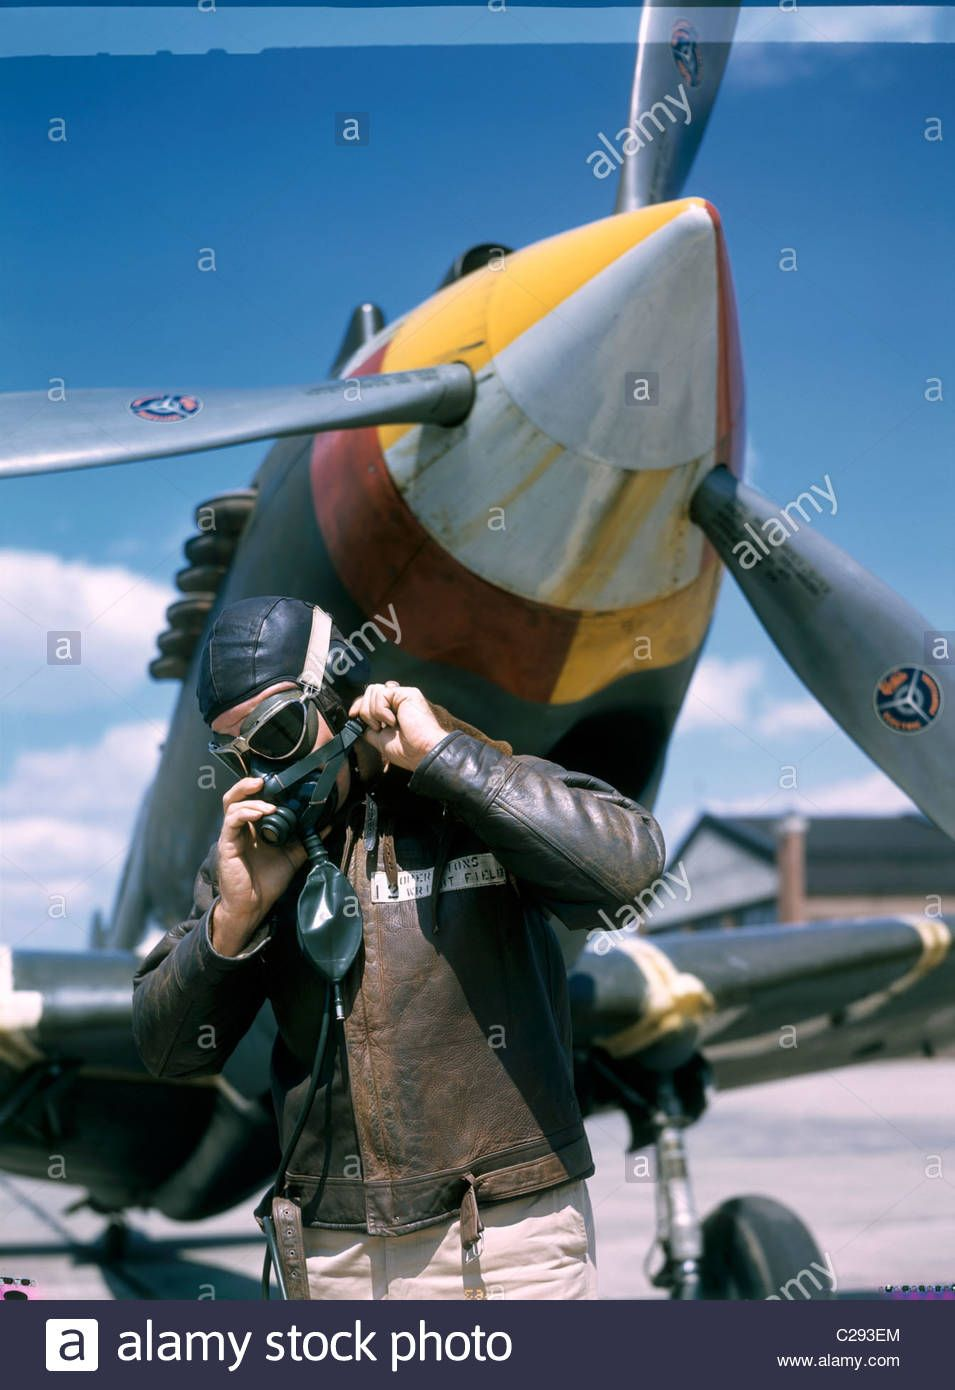 A pilot adjusts his oxygen mask in front of an airplane  Stock Photo